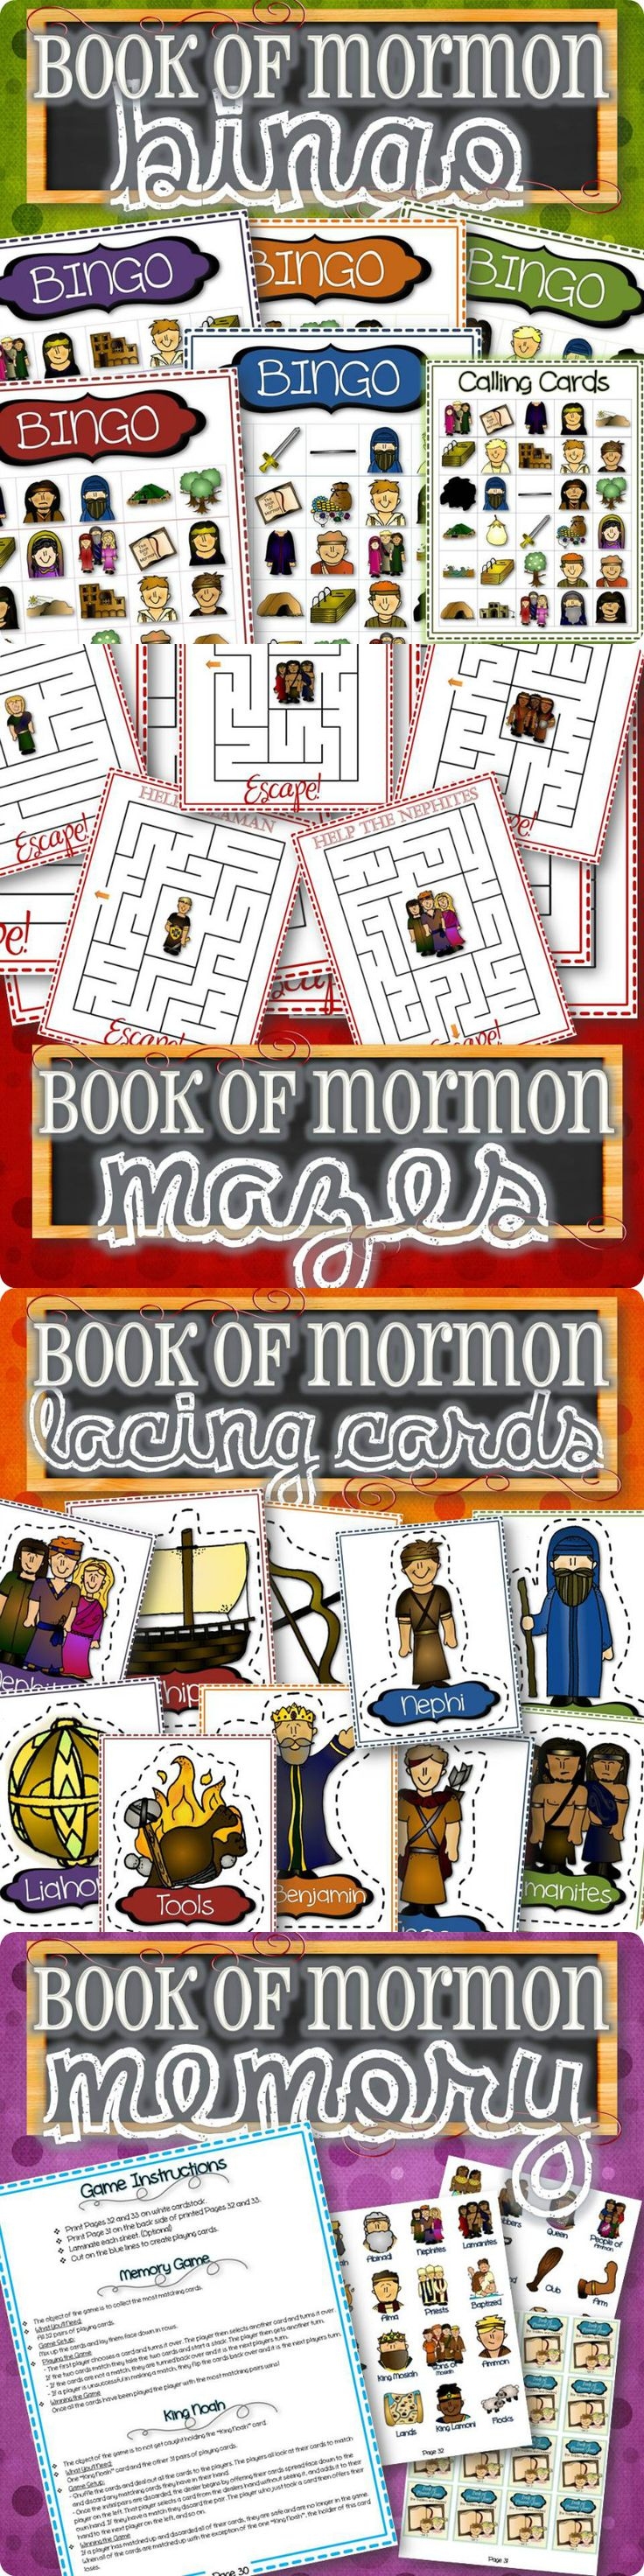 LDS activities and games for kids!